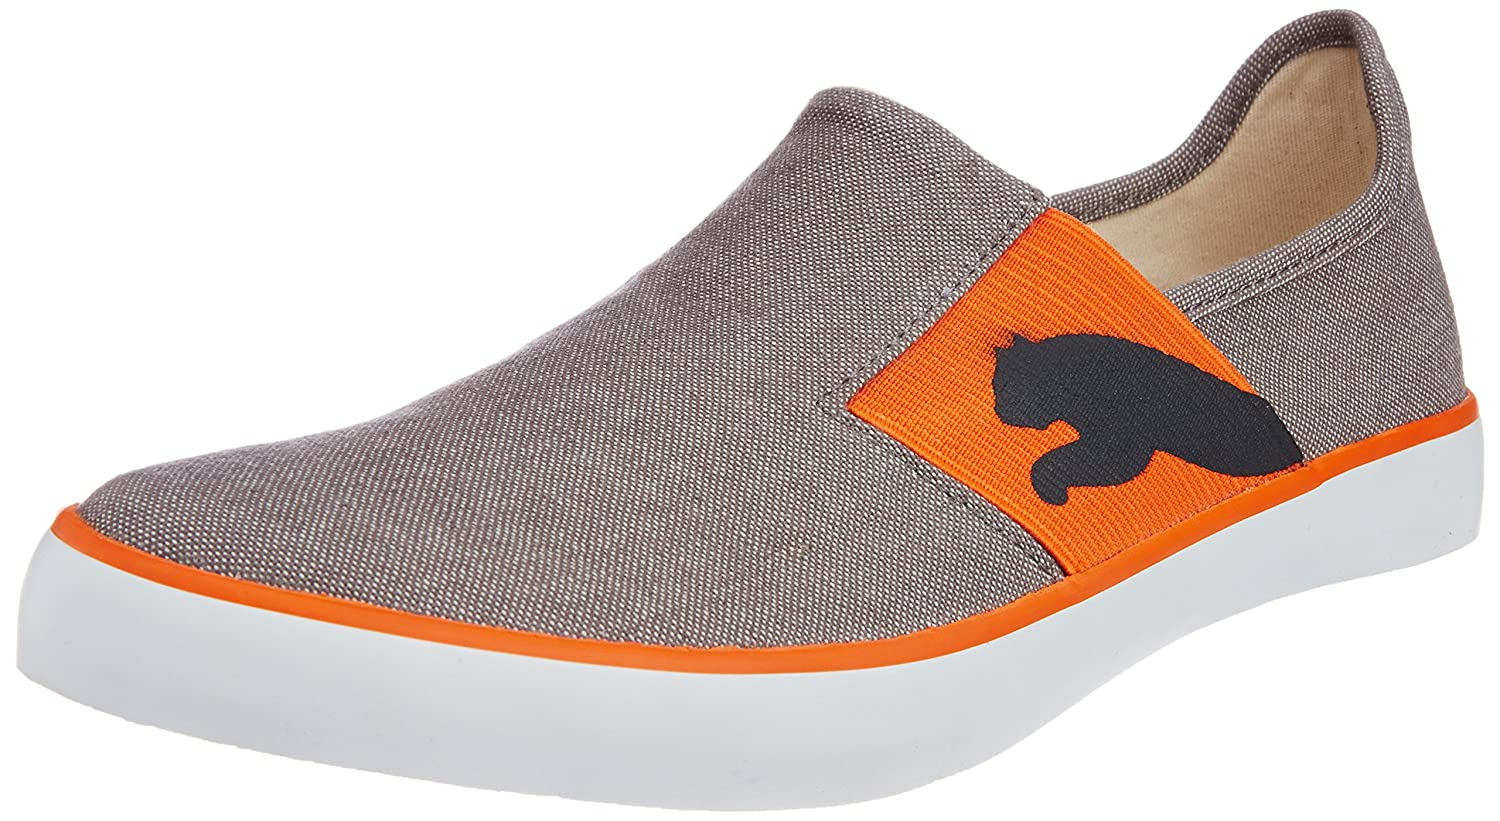 Puma Men's Lazy Slip On Ind Steel Grey and Orange Canvas Boat Shoes - 5  UK/India (38EU): Amazon.in: Shoes & Handbags